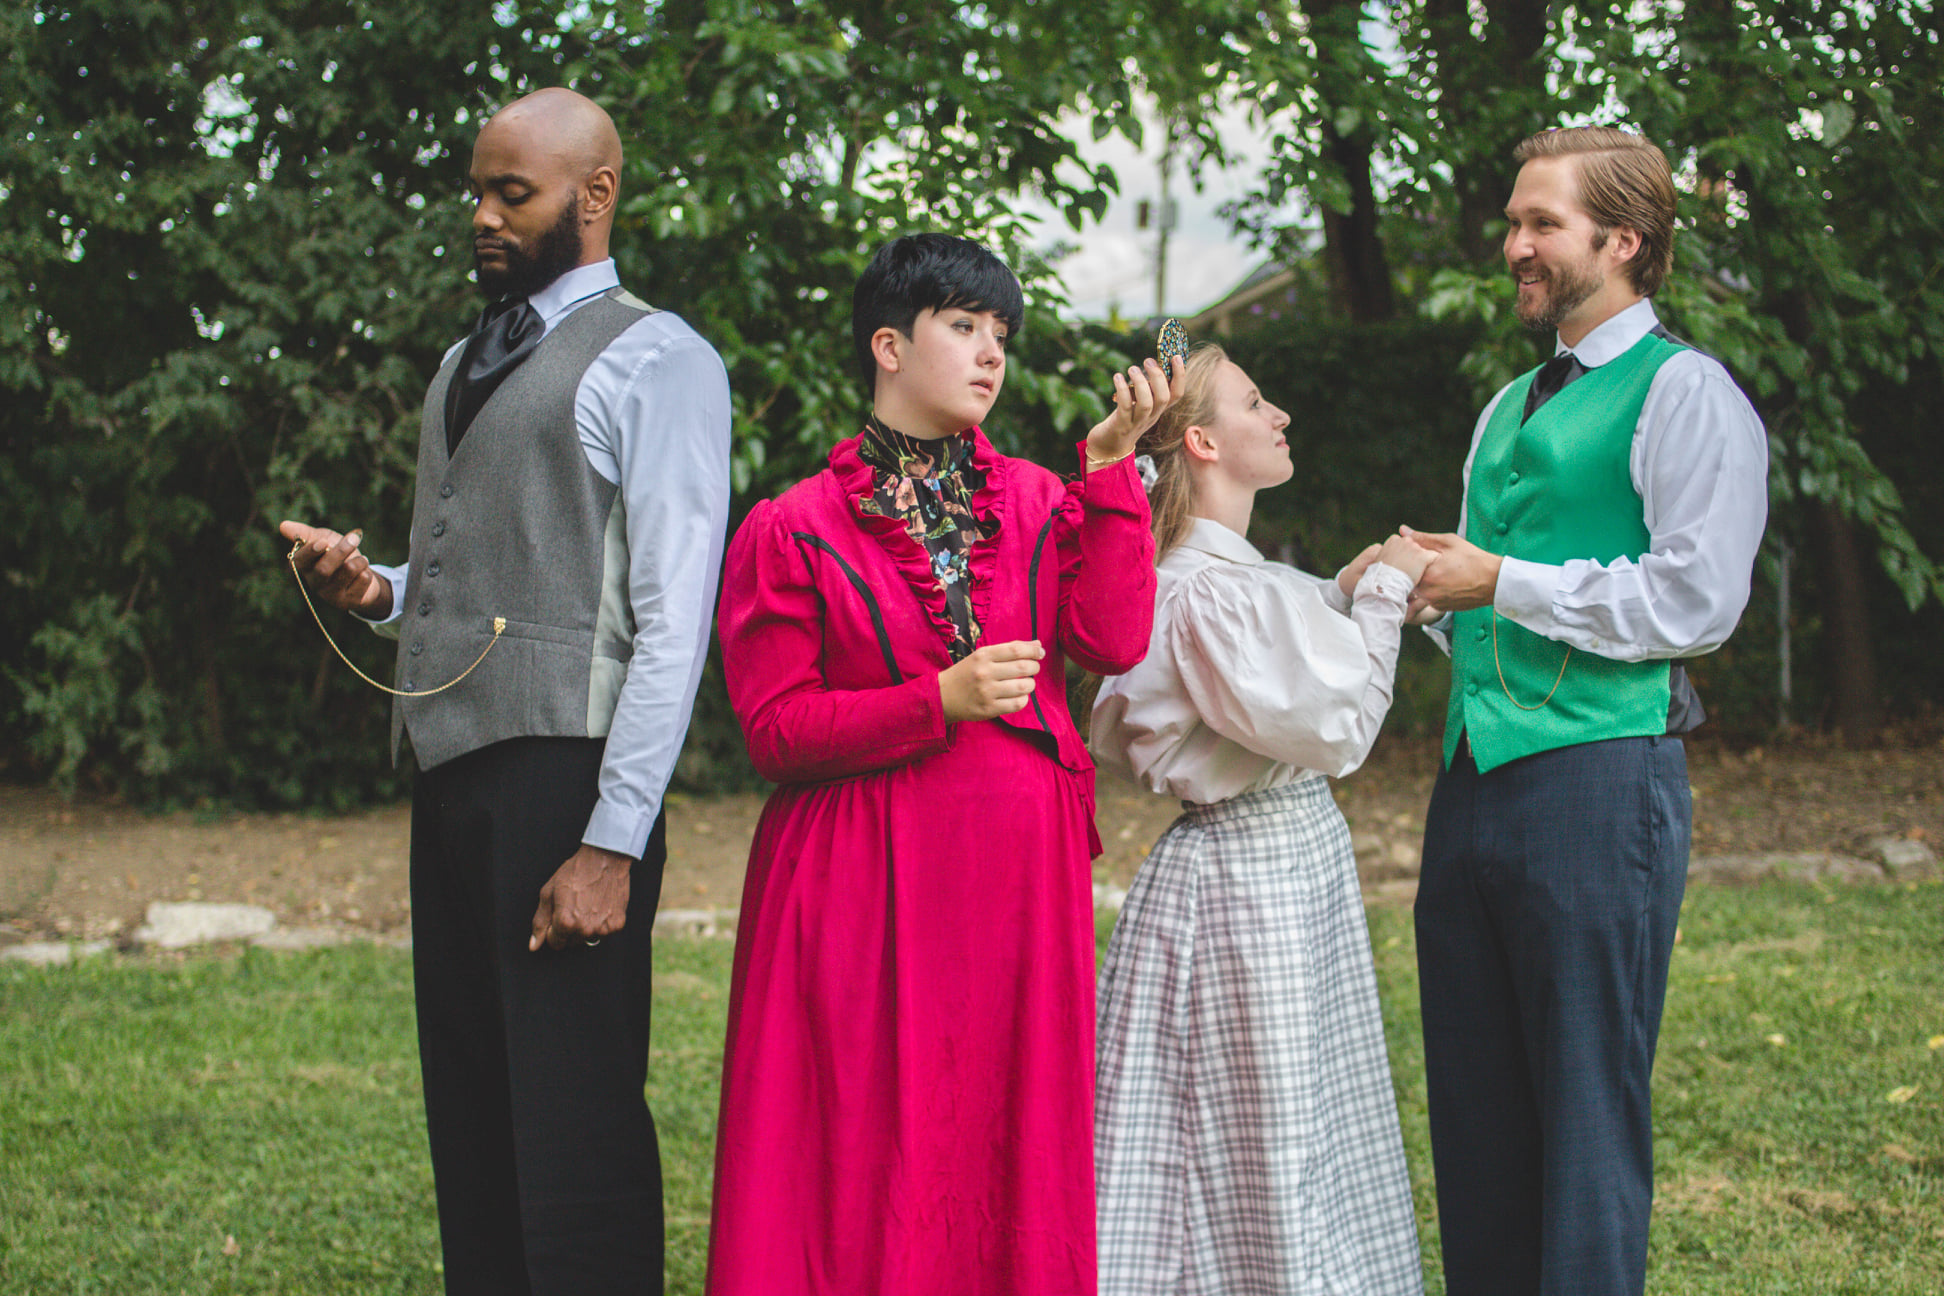 SISP_The Importance of Being Earnest promo